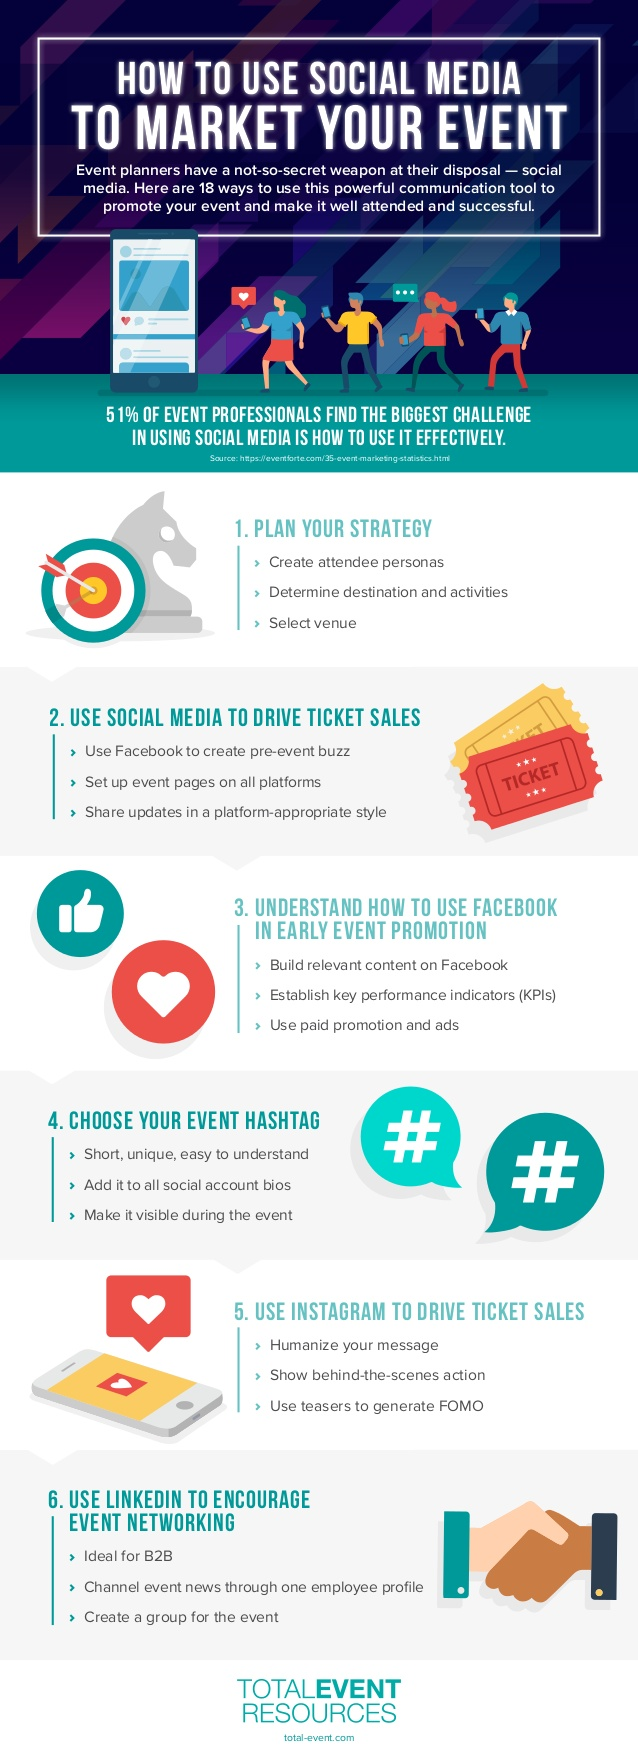 Event planning on social